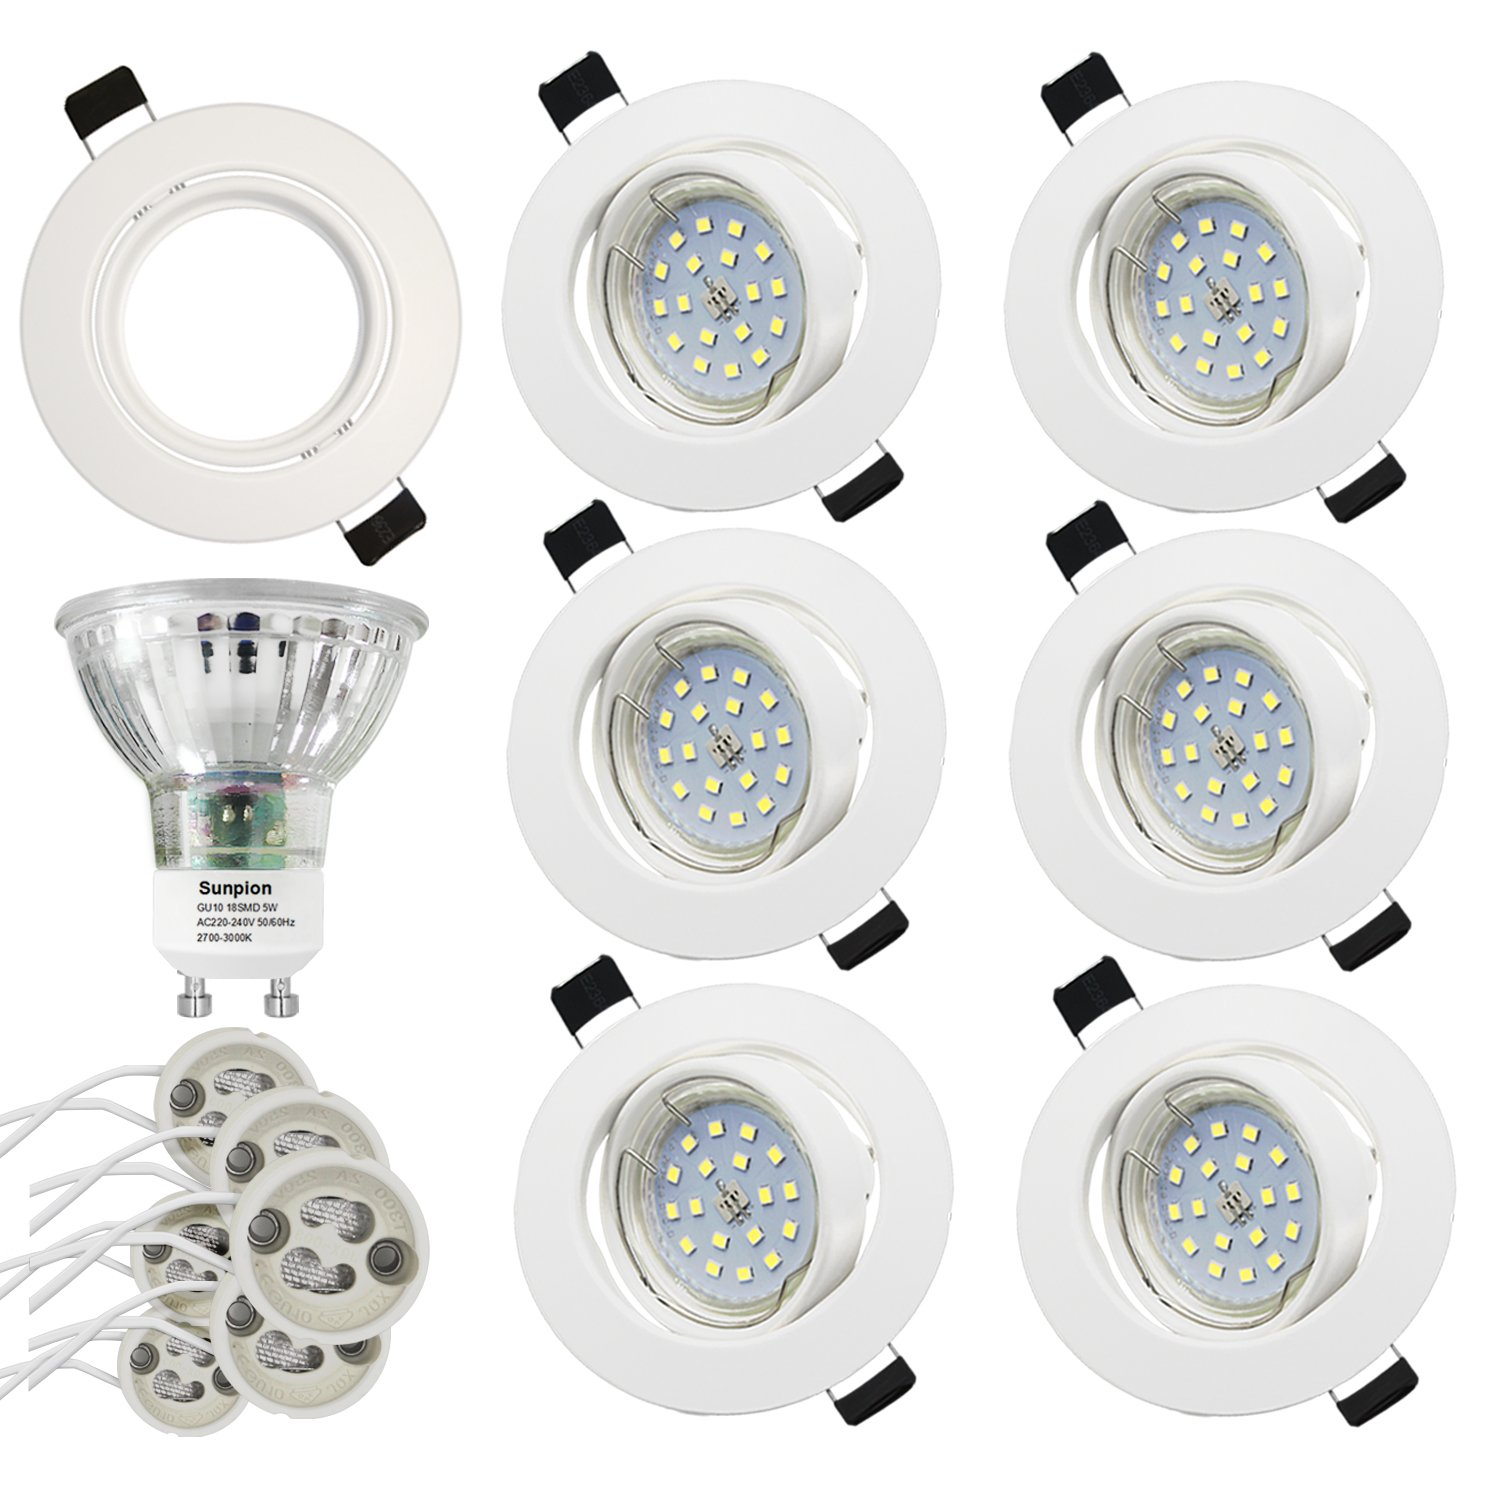 Foco Empotrable | LED Luz de Techo 5W Equivalente a Incandescente 60W | Blanco Cálido 2700K